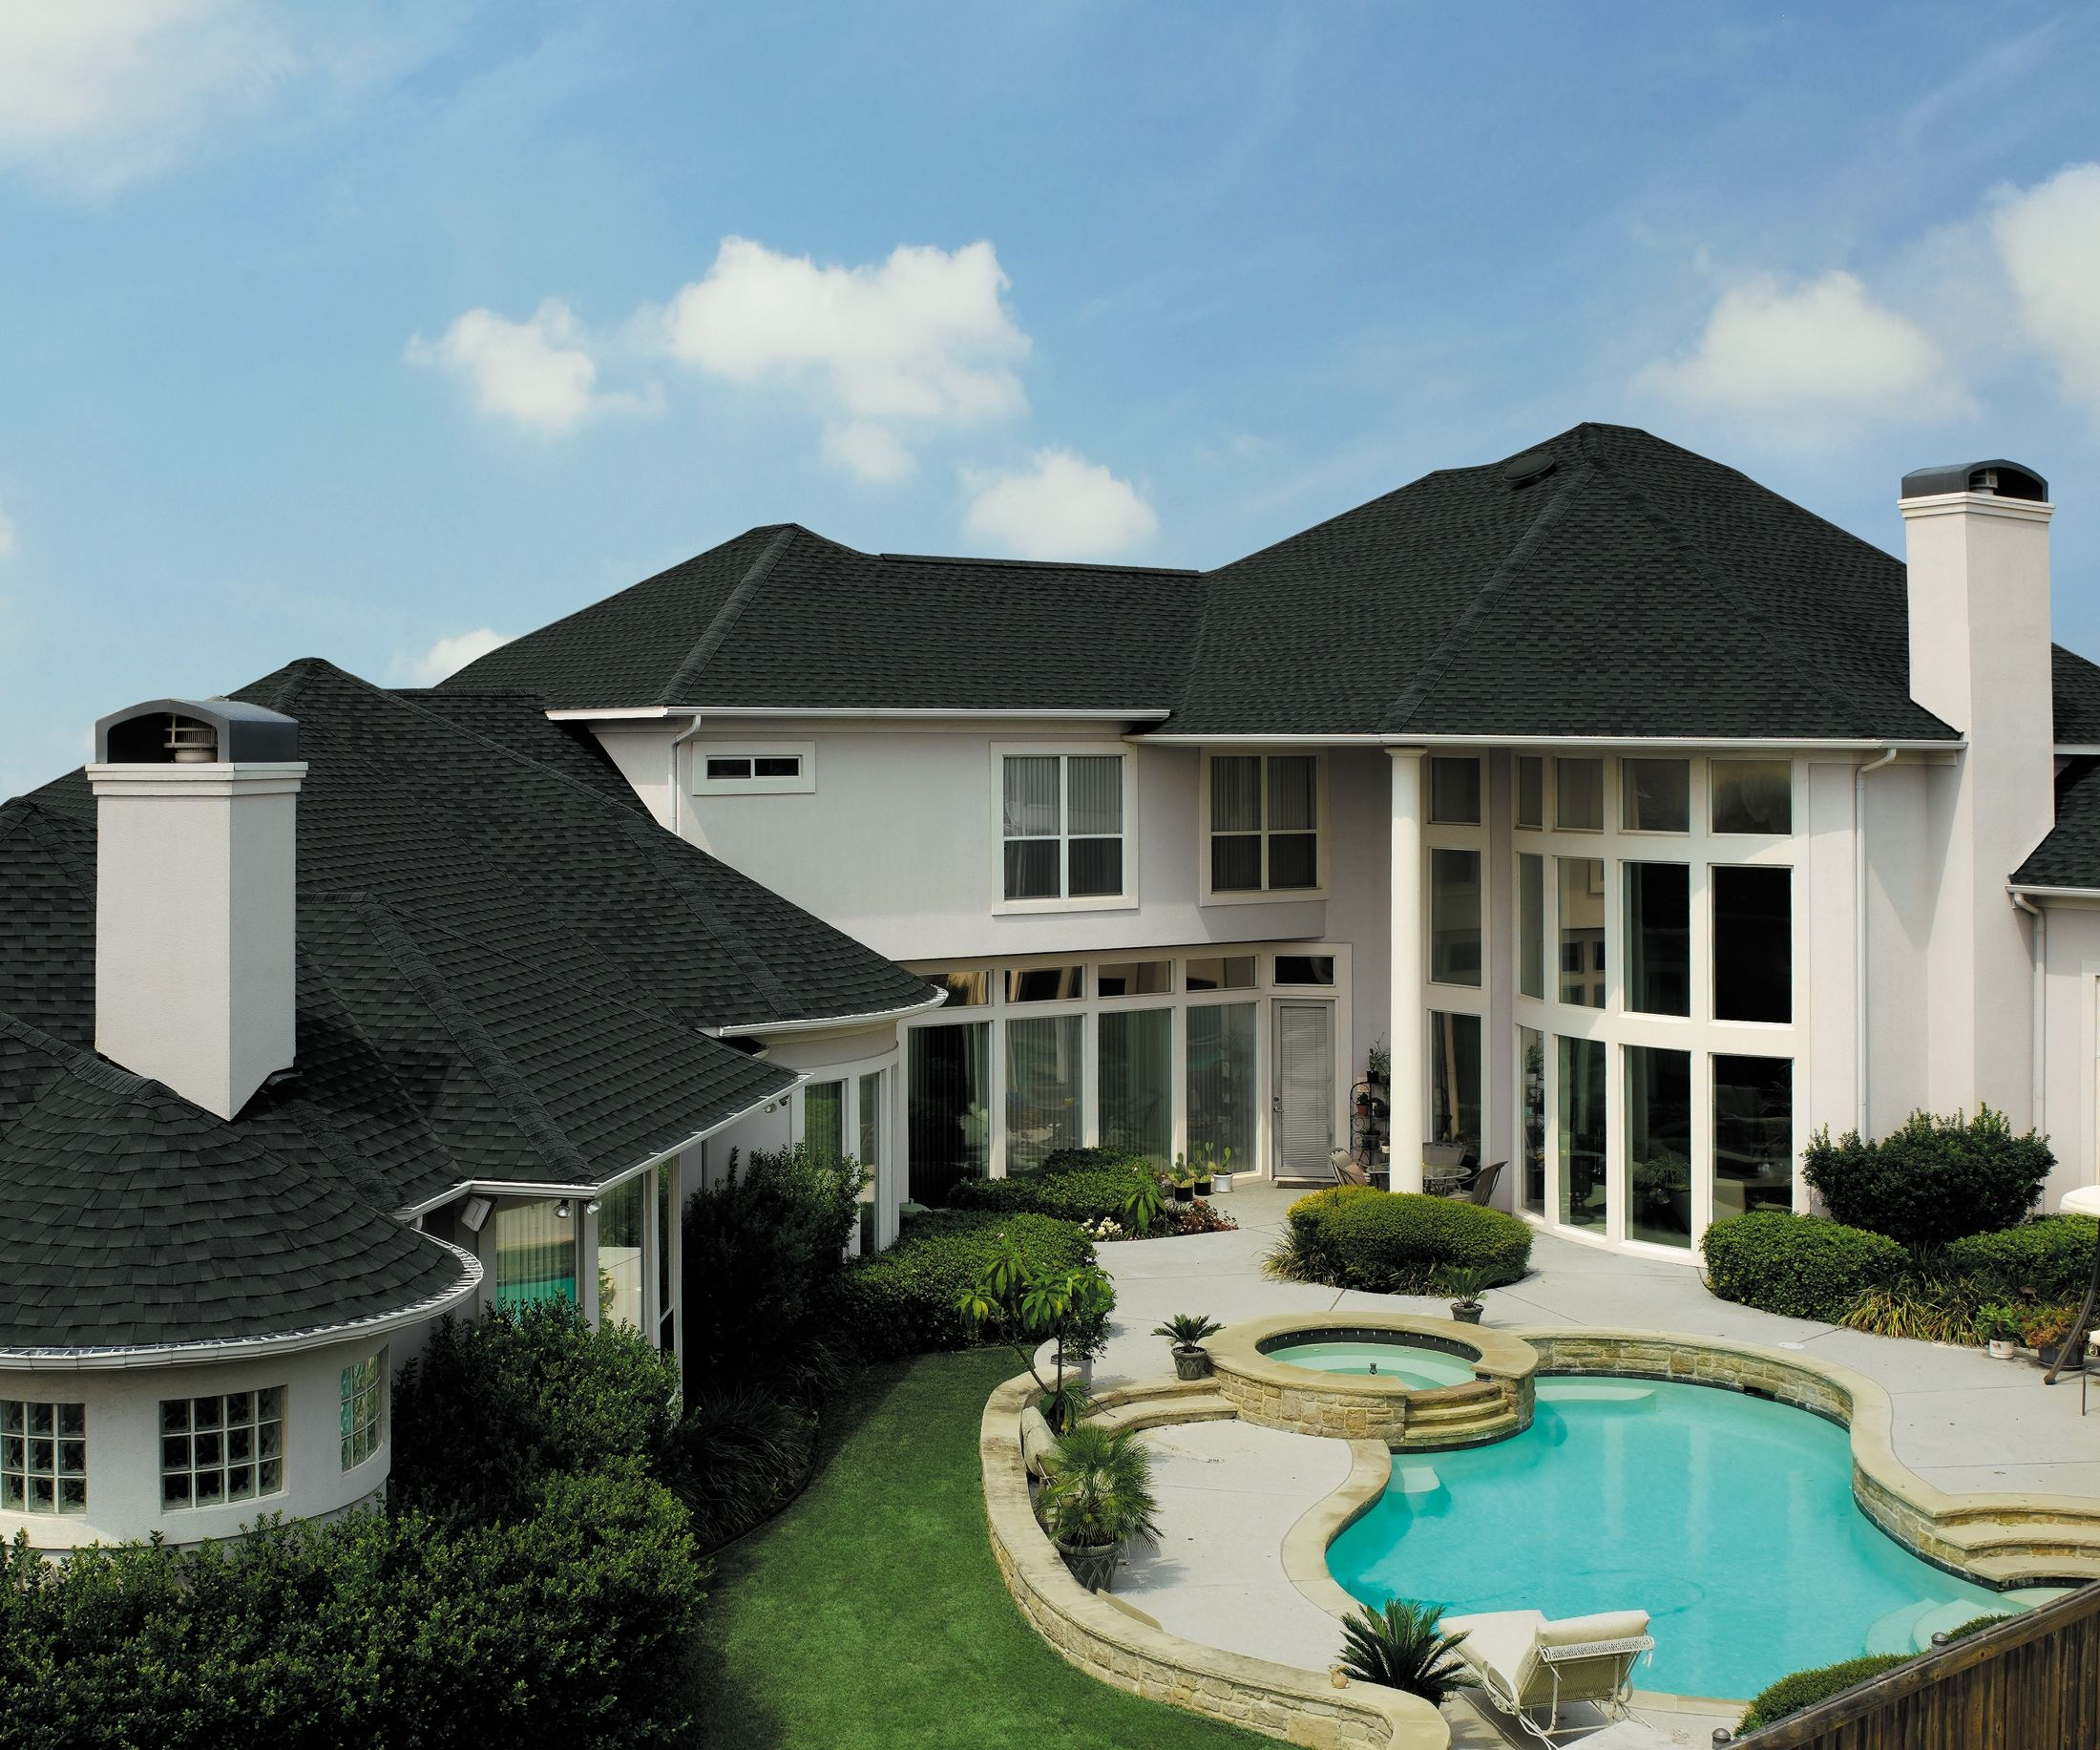 Tri State Windows Siding Roofing Gaf Timberline Charcoal Architectural Shingles